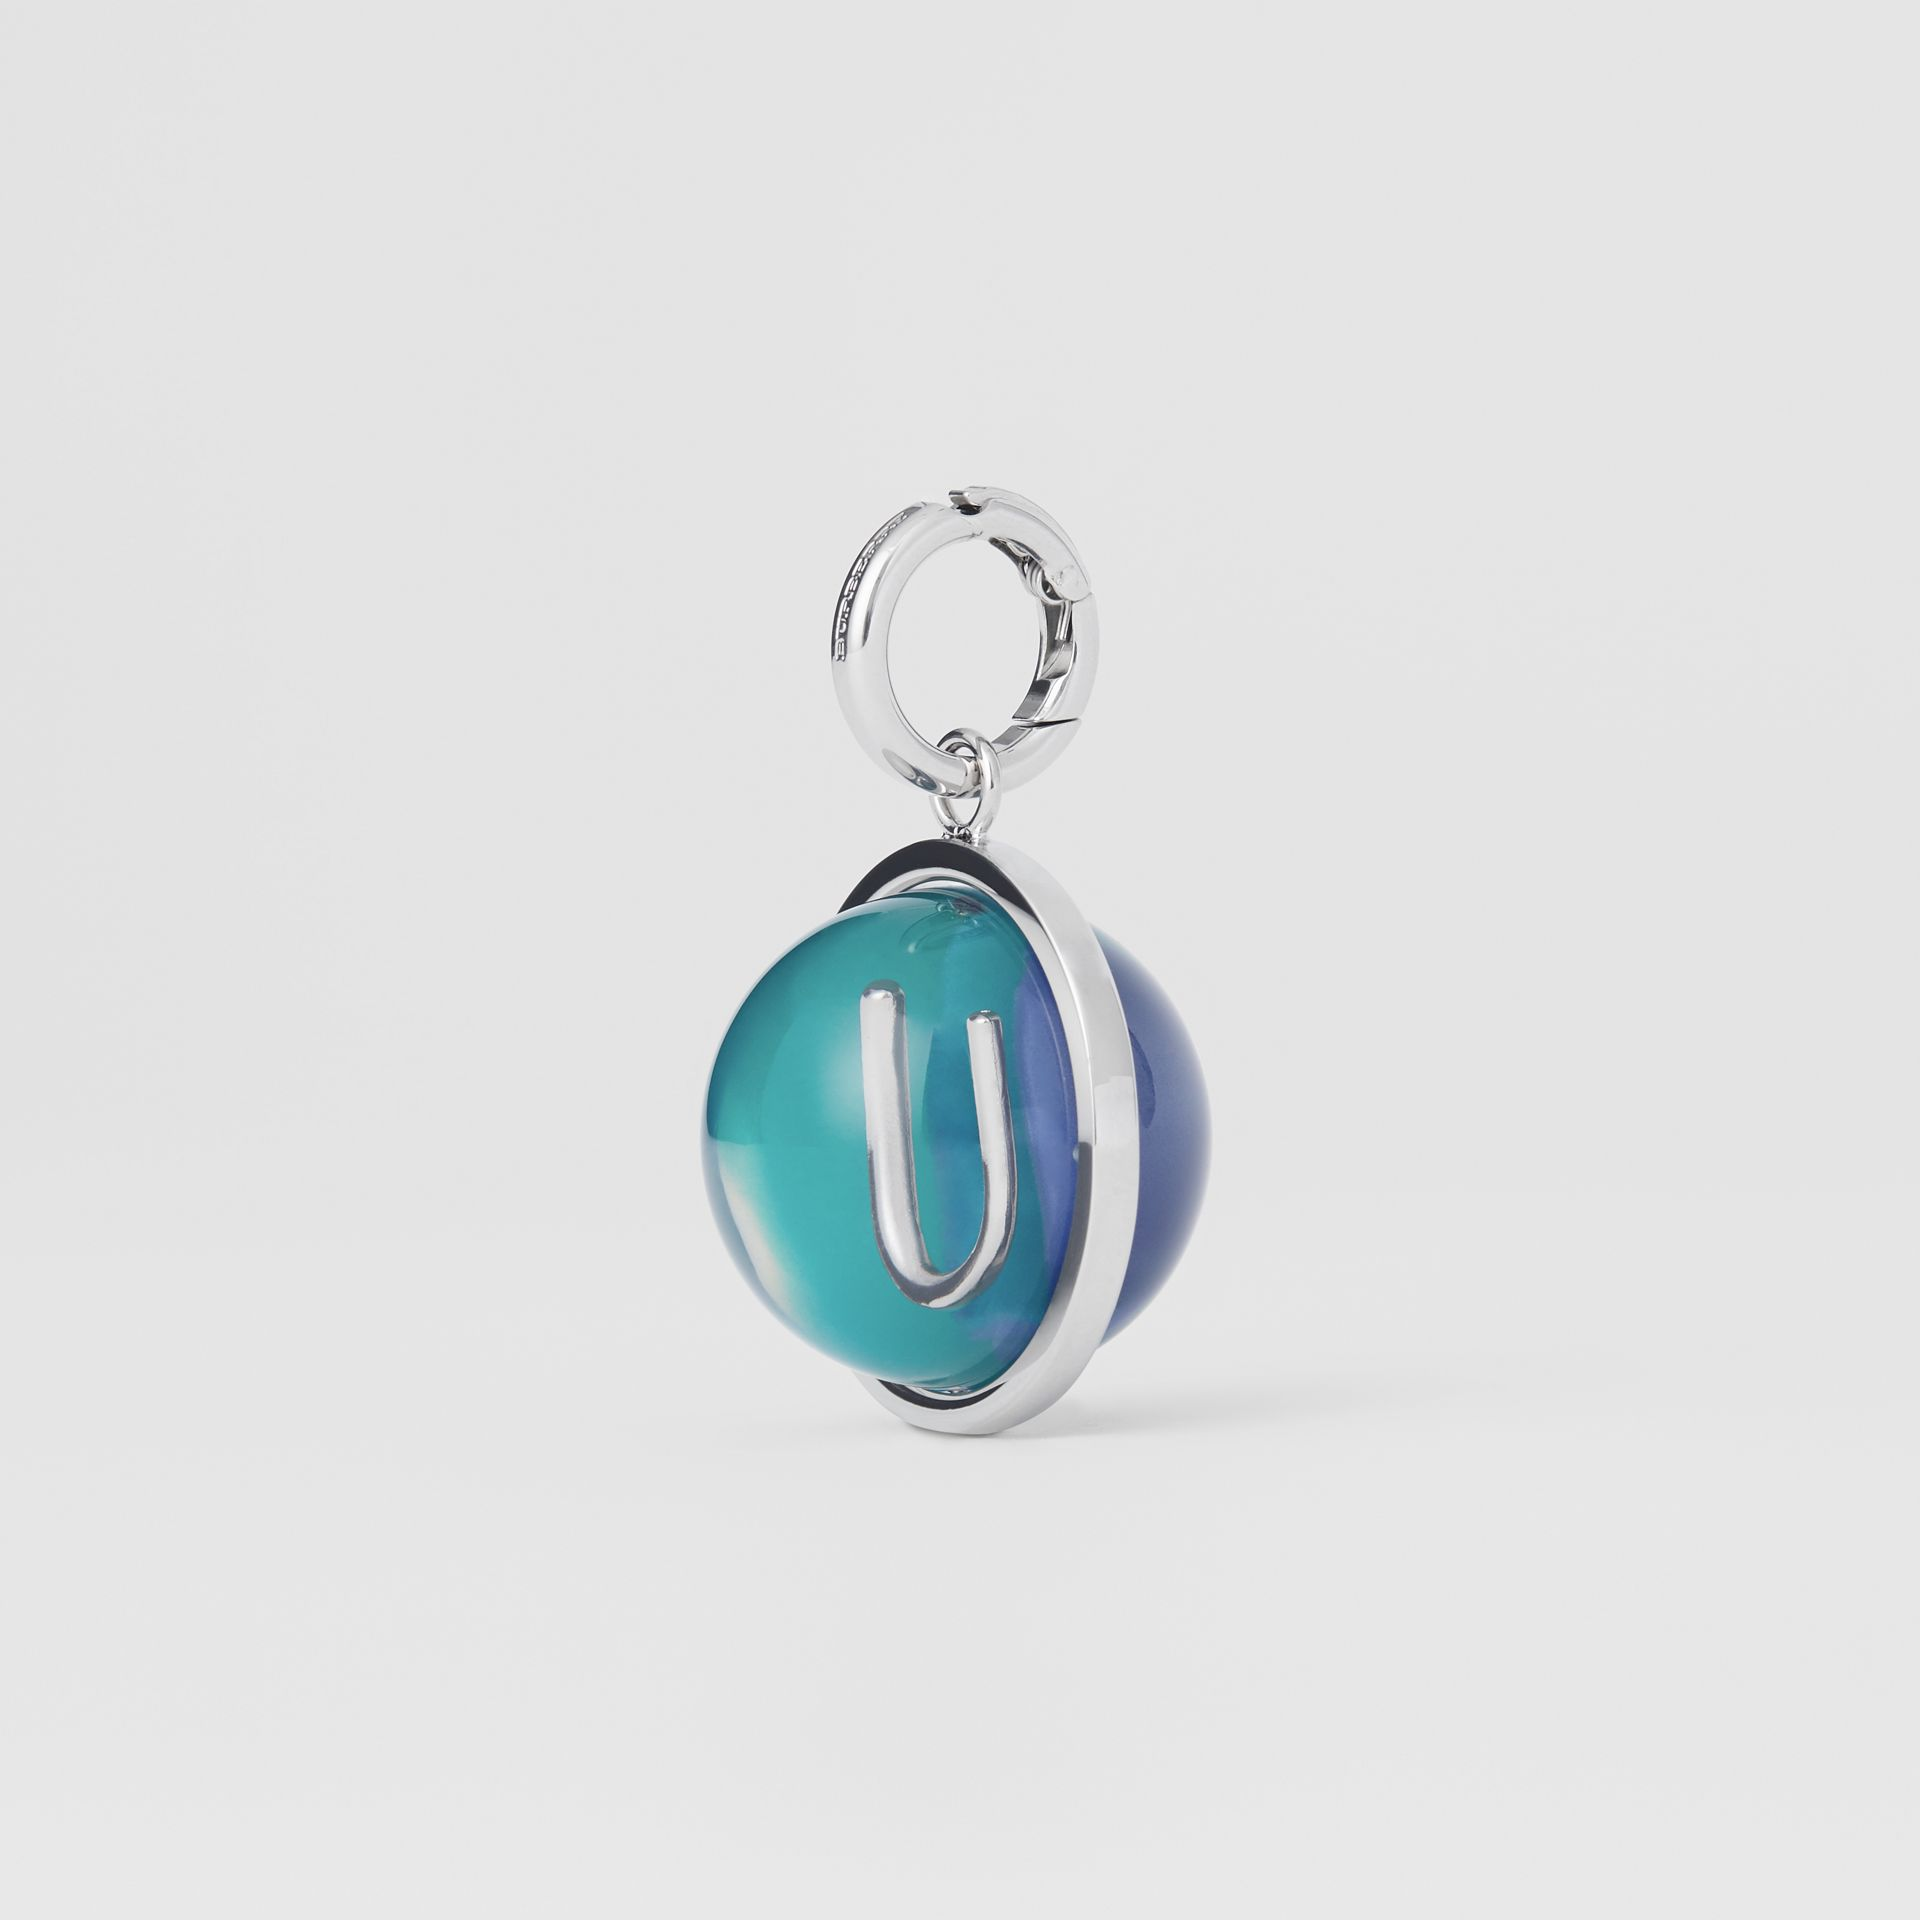 Marbled Resin 'U' Alphabet Charm in Palladio/ocean Blue - Women | Burberry Singapore - gallery image 4